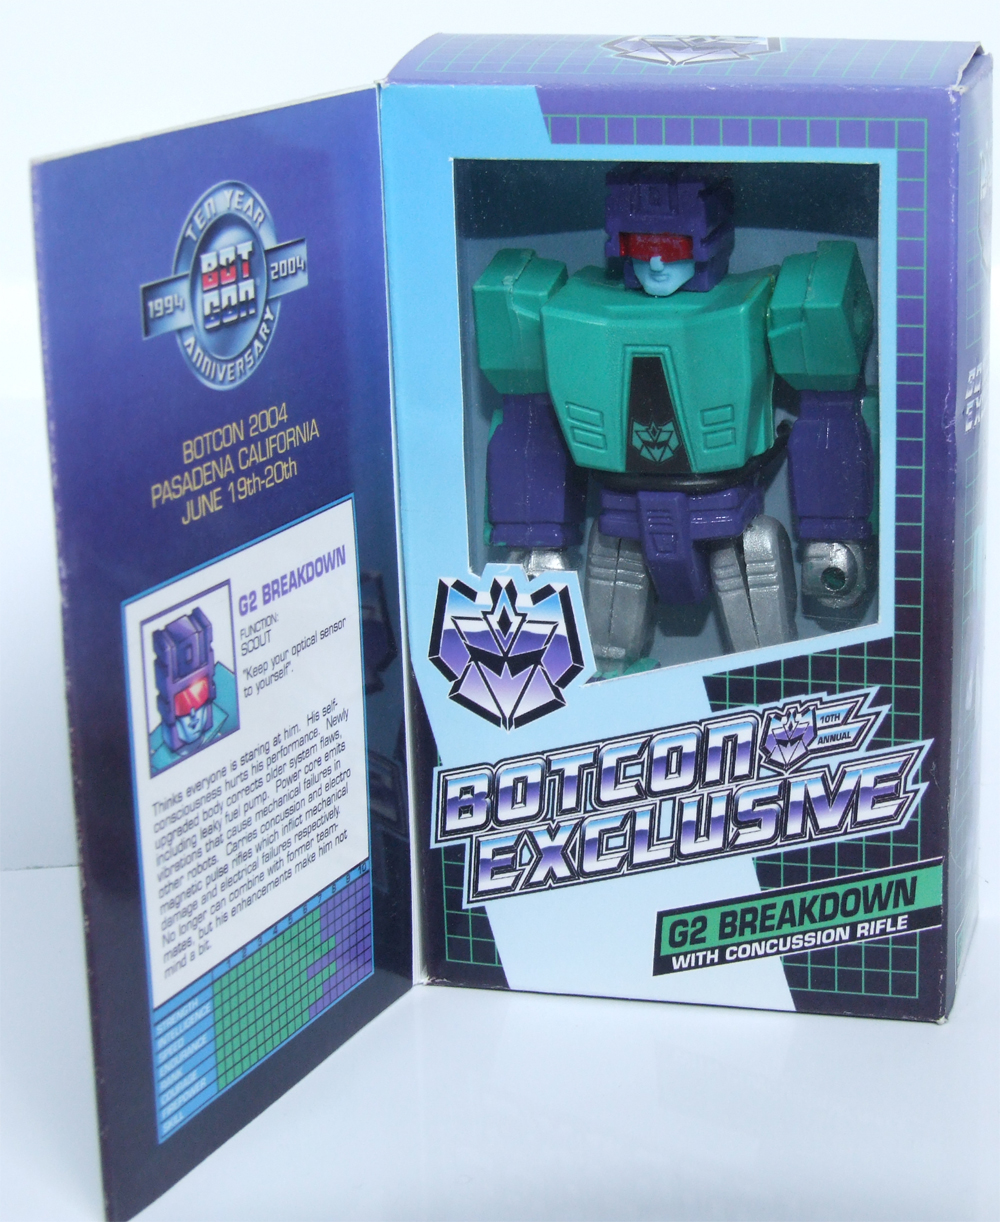 <strong>botcon-2004-am-breakdown-014.jpg</strong><br /><b>Arrow Key Shortcuts:</b> <i>left</i> = previous, <i>right</i> = next, <i>down</i> = zoom-in, <i>up</i> = zoom-out.